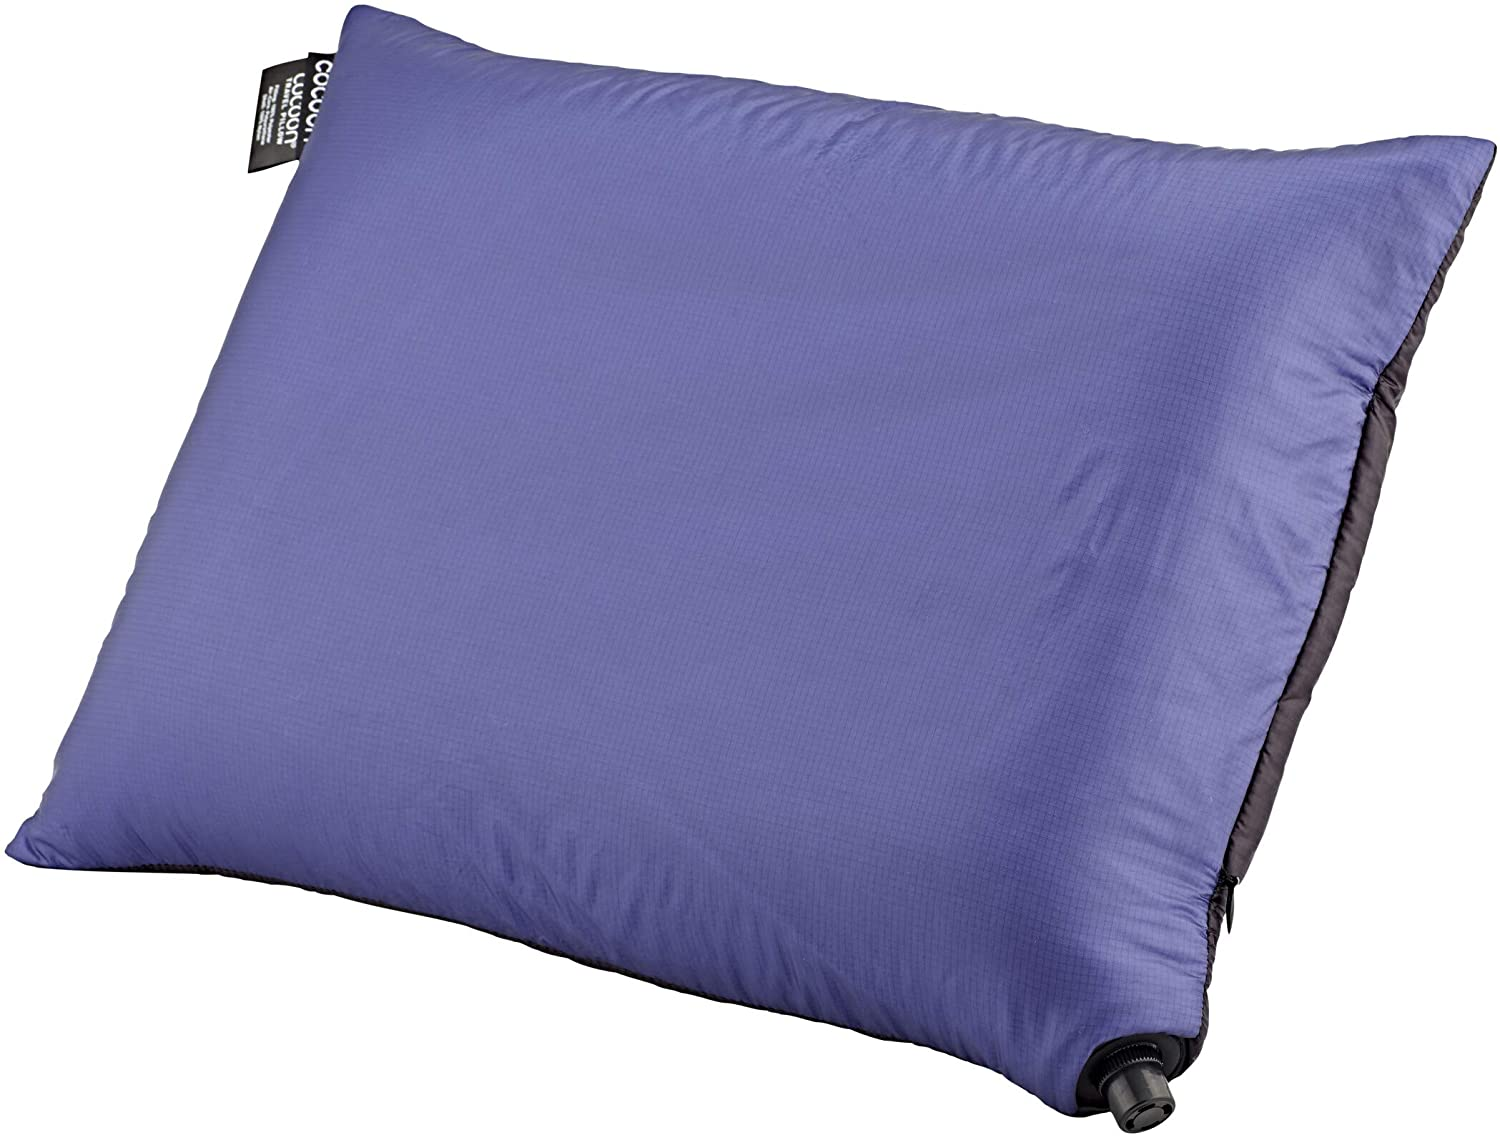 Top 10 Best Backpacking Pillow 2021 Reviews 31